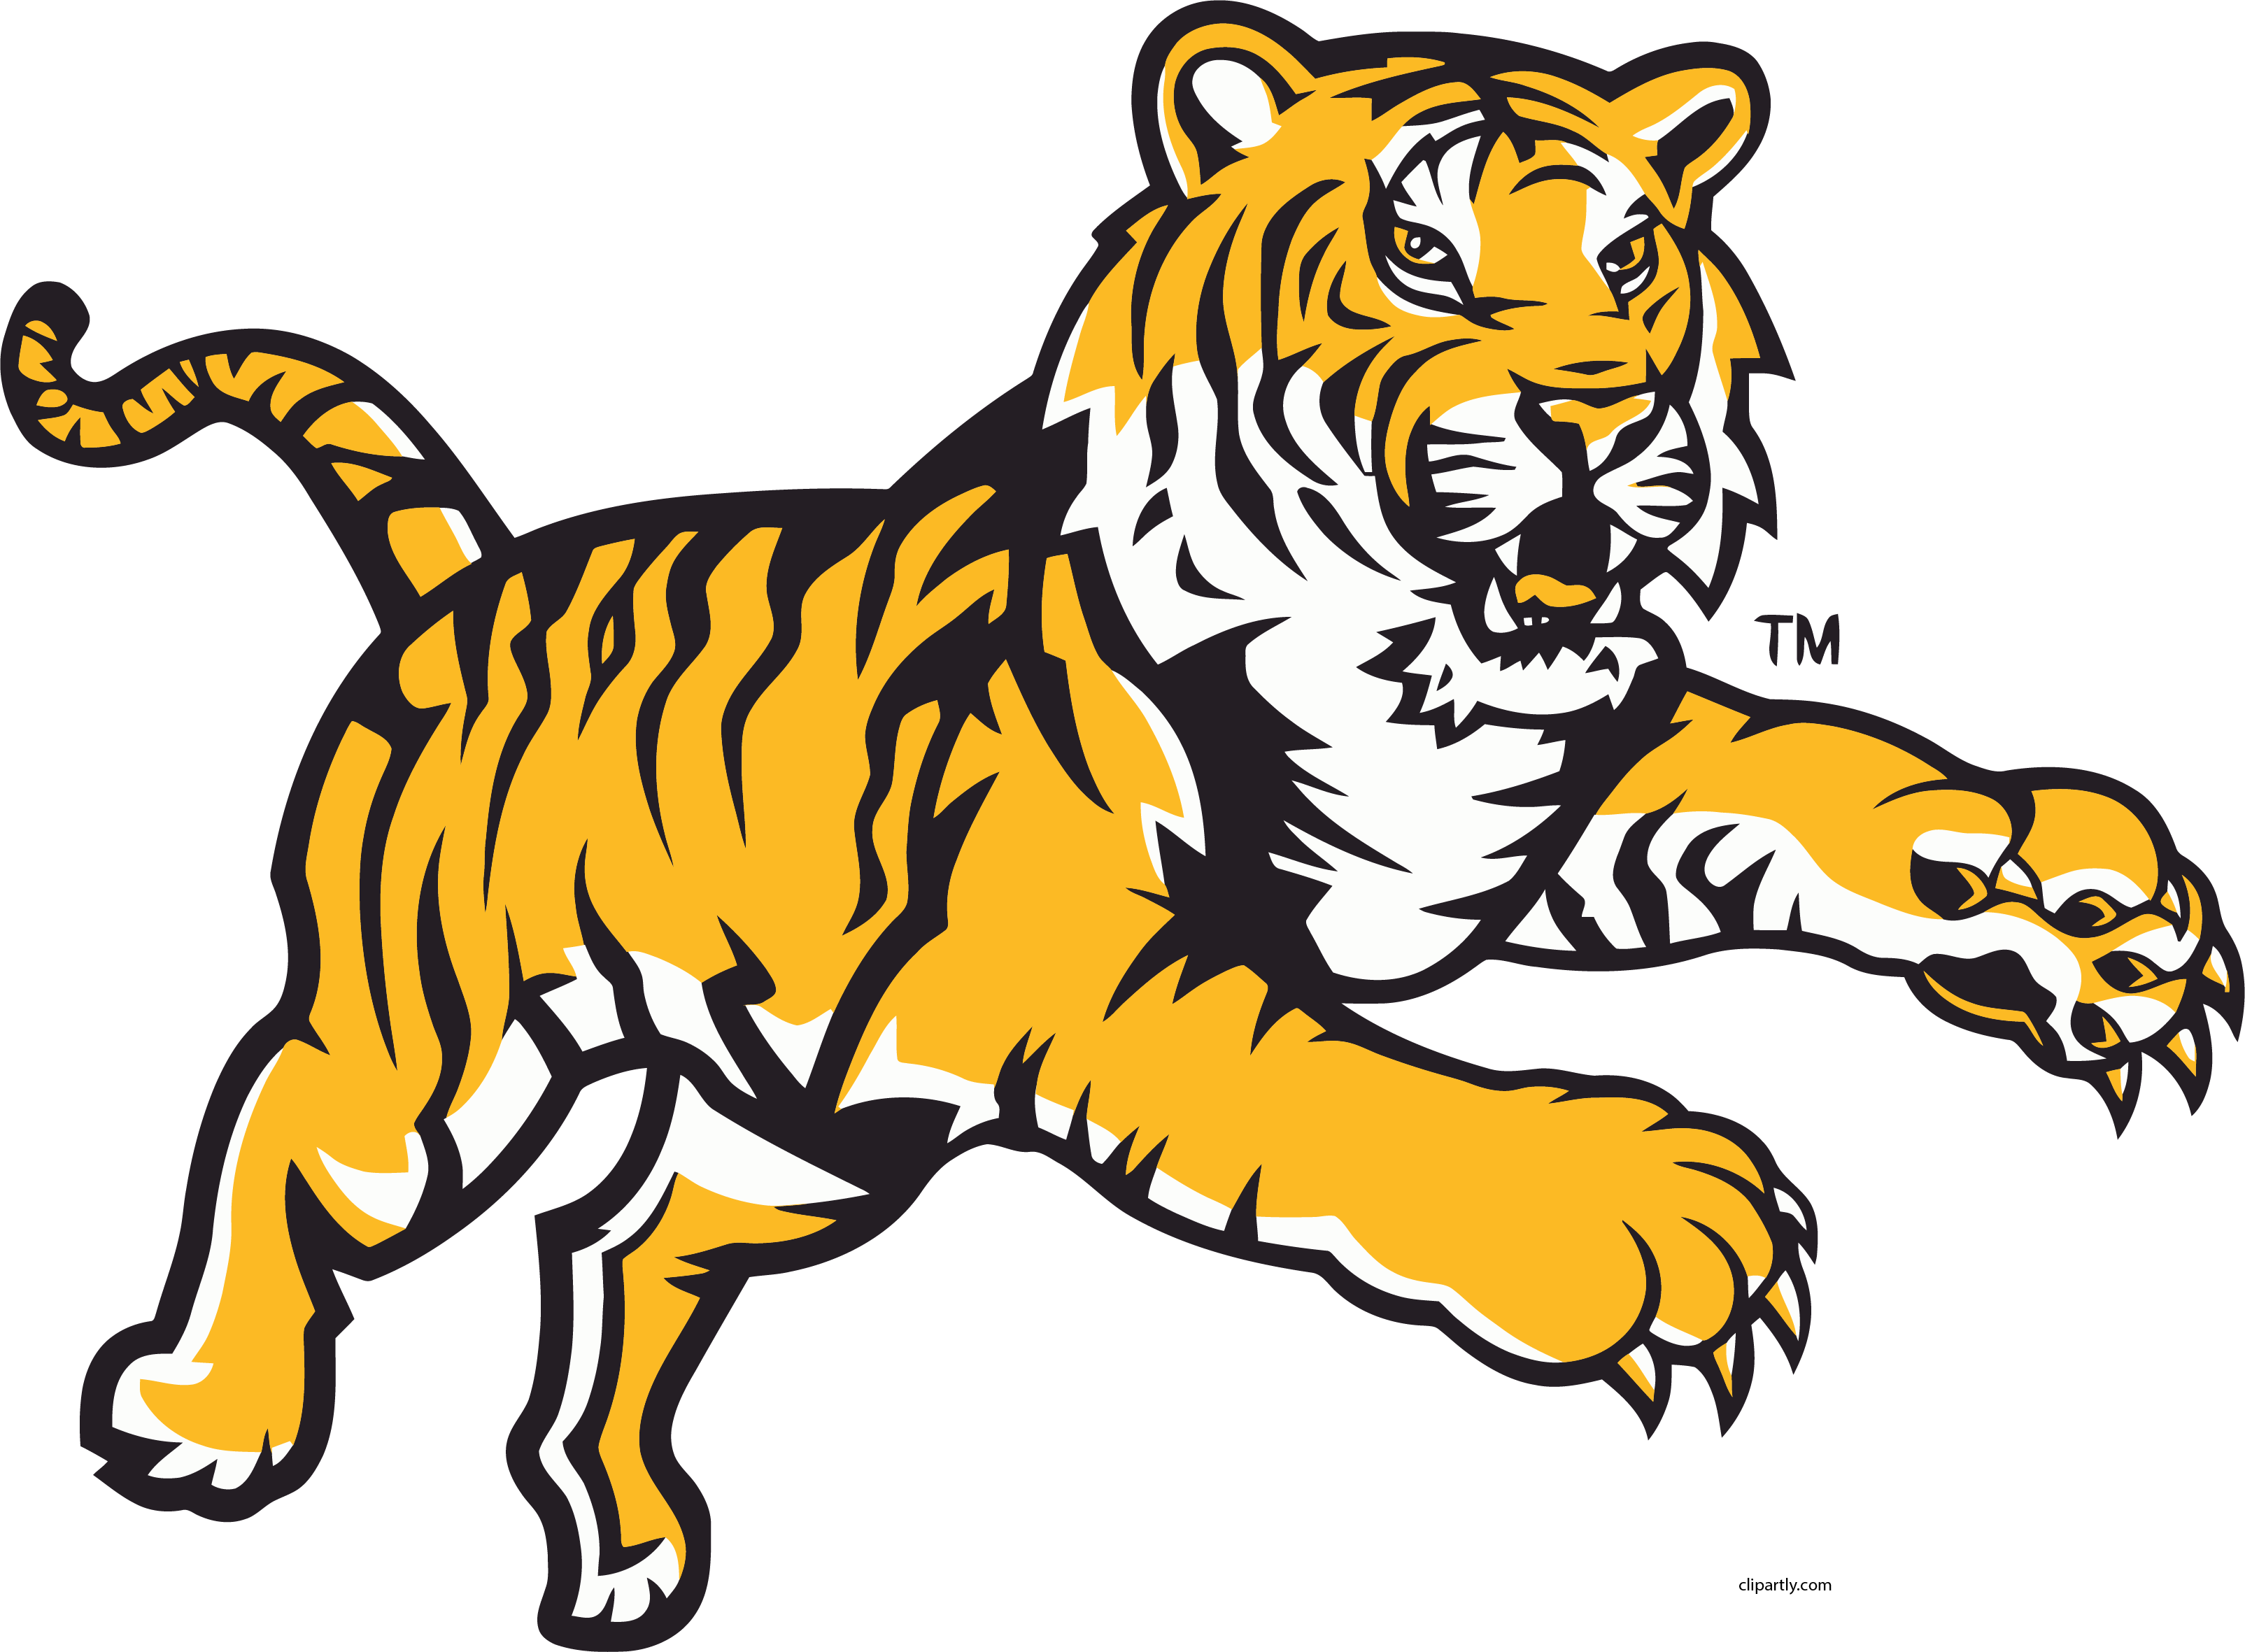 Tiger clipart mean jpg freeuse stock HD Angry Tigger Attack Jump Clipart Png - Lsu Tigers ... jpg freeuse stock